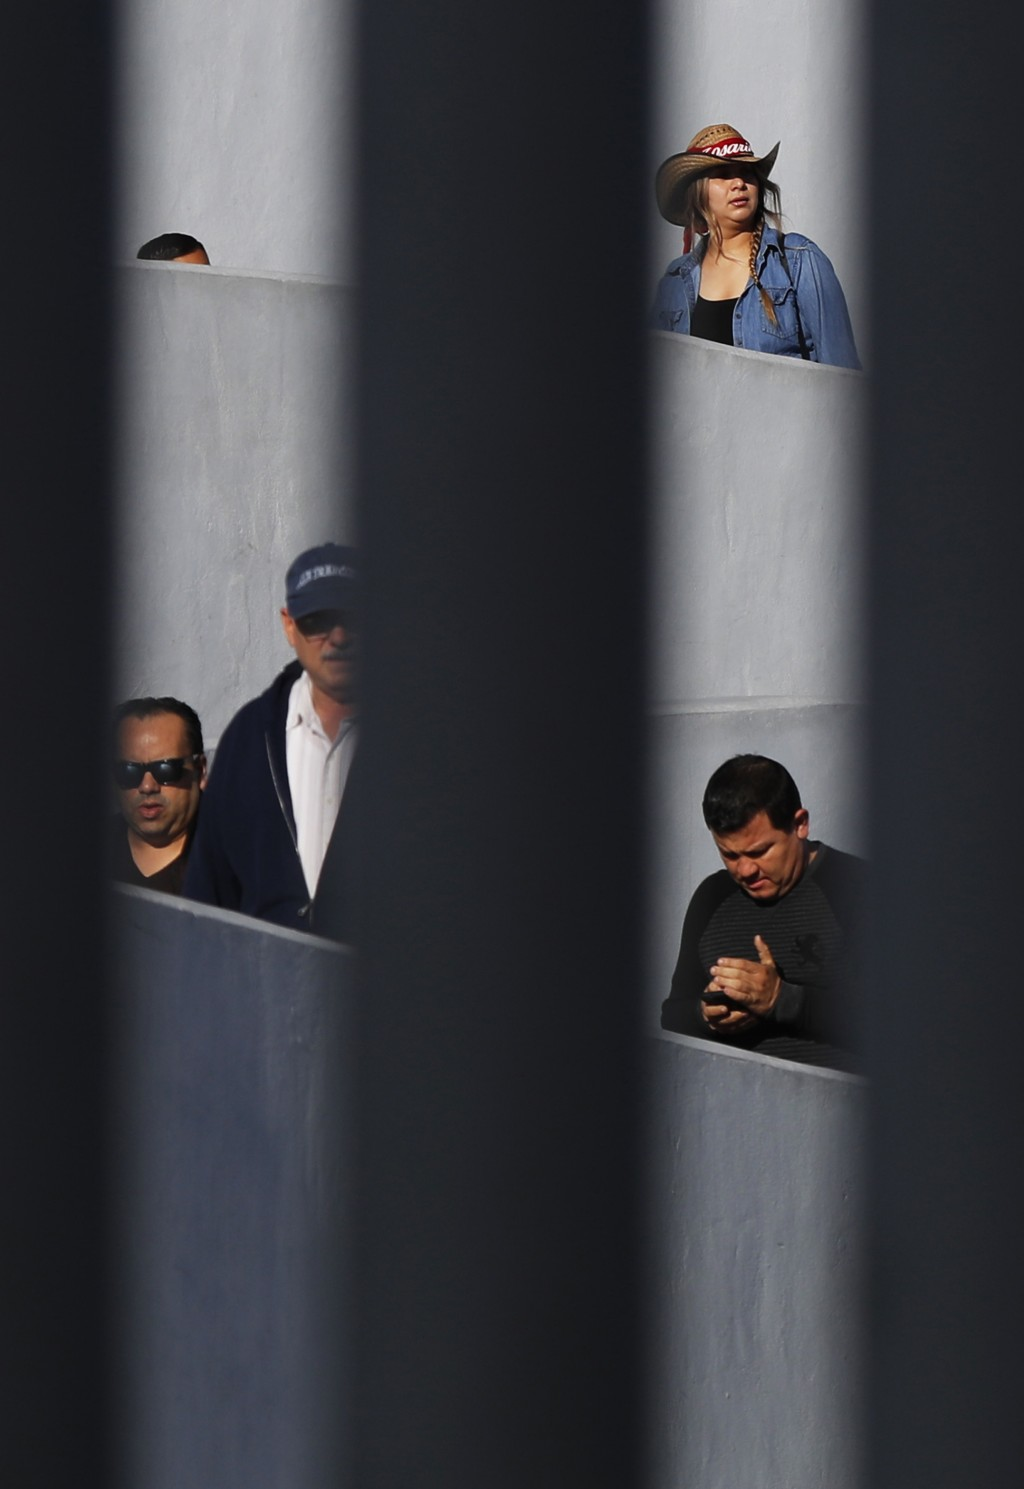 People use a legal border crossing to walk from Tijuana, Mexico to the U.S., Sunday, Nov. 18, 2018. While many in Tijuana are sympathetic to the pligh